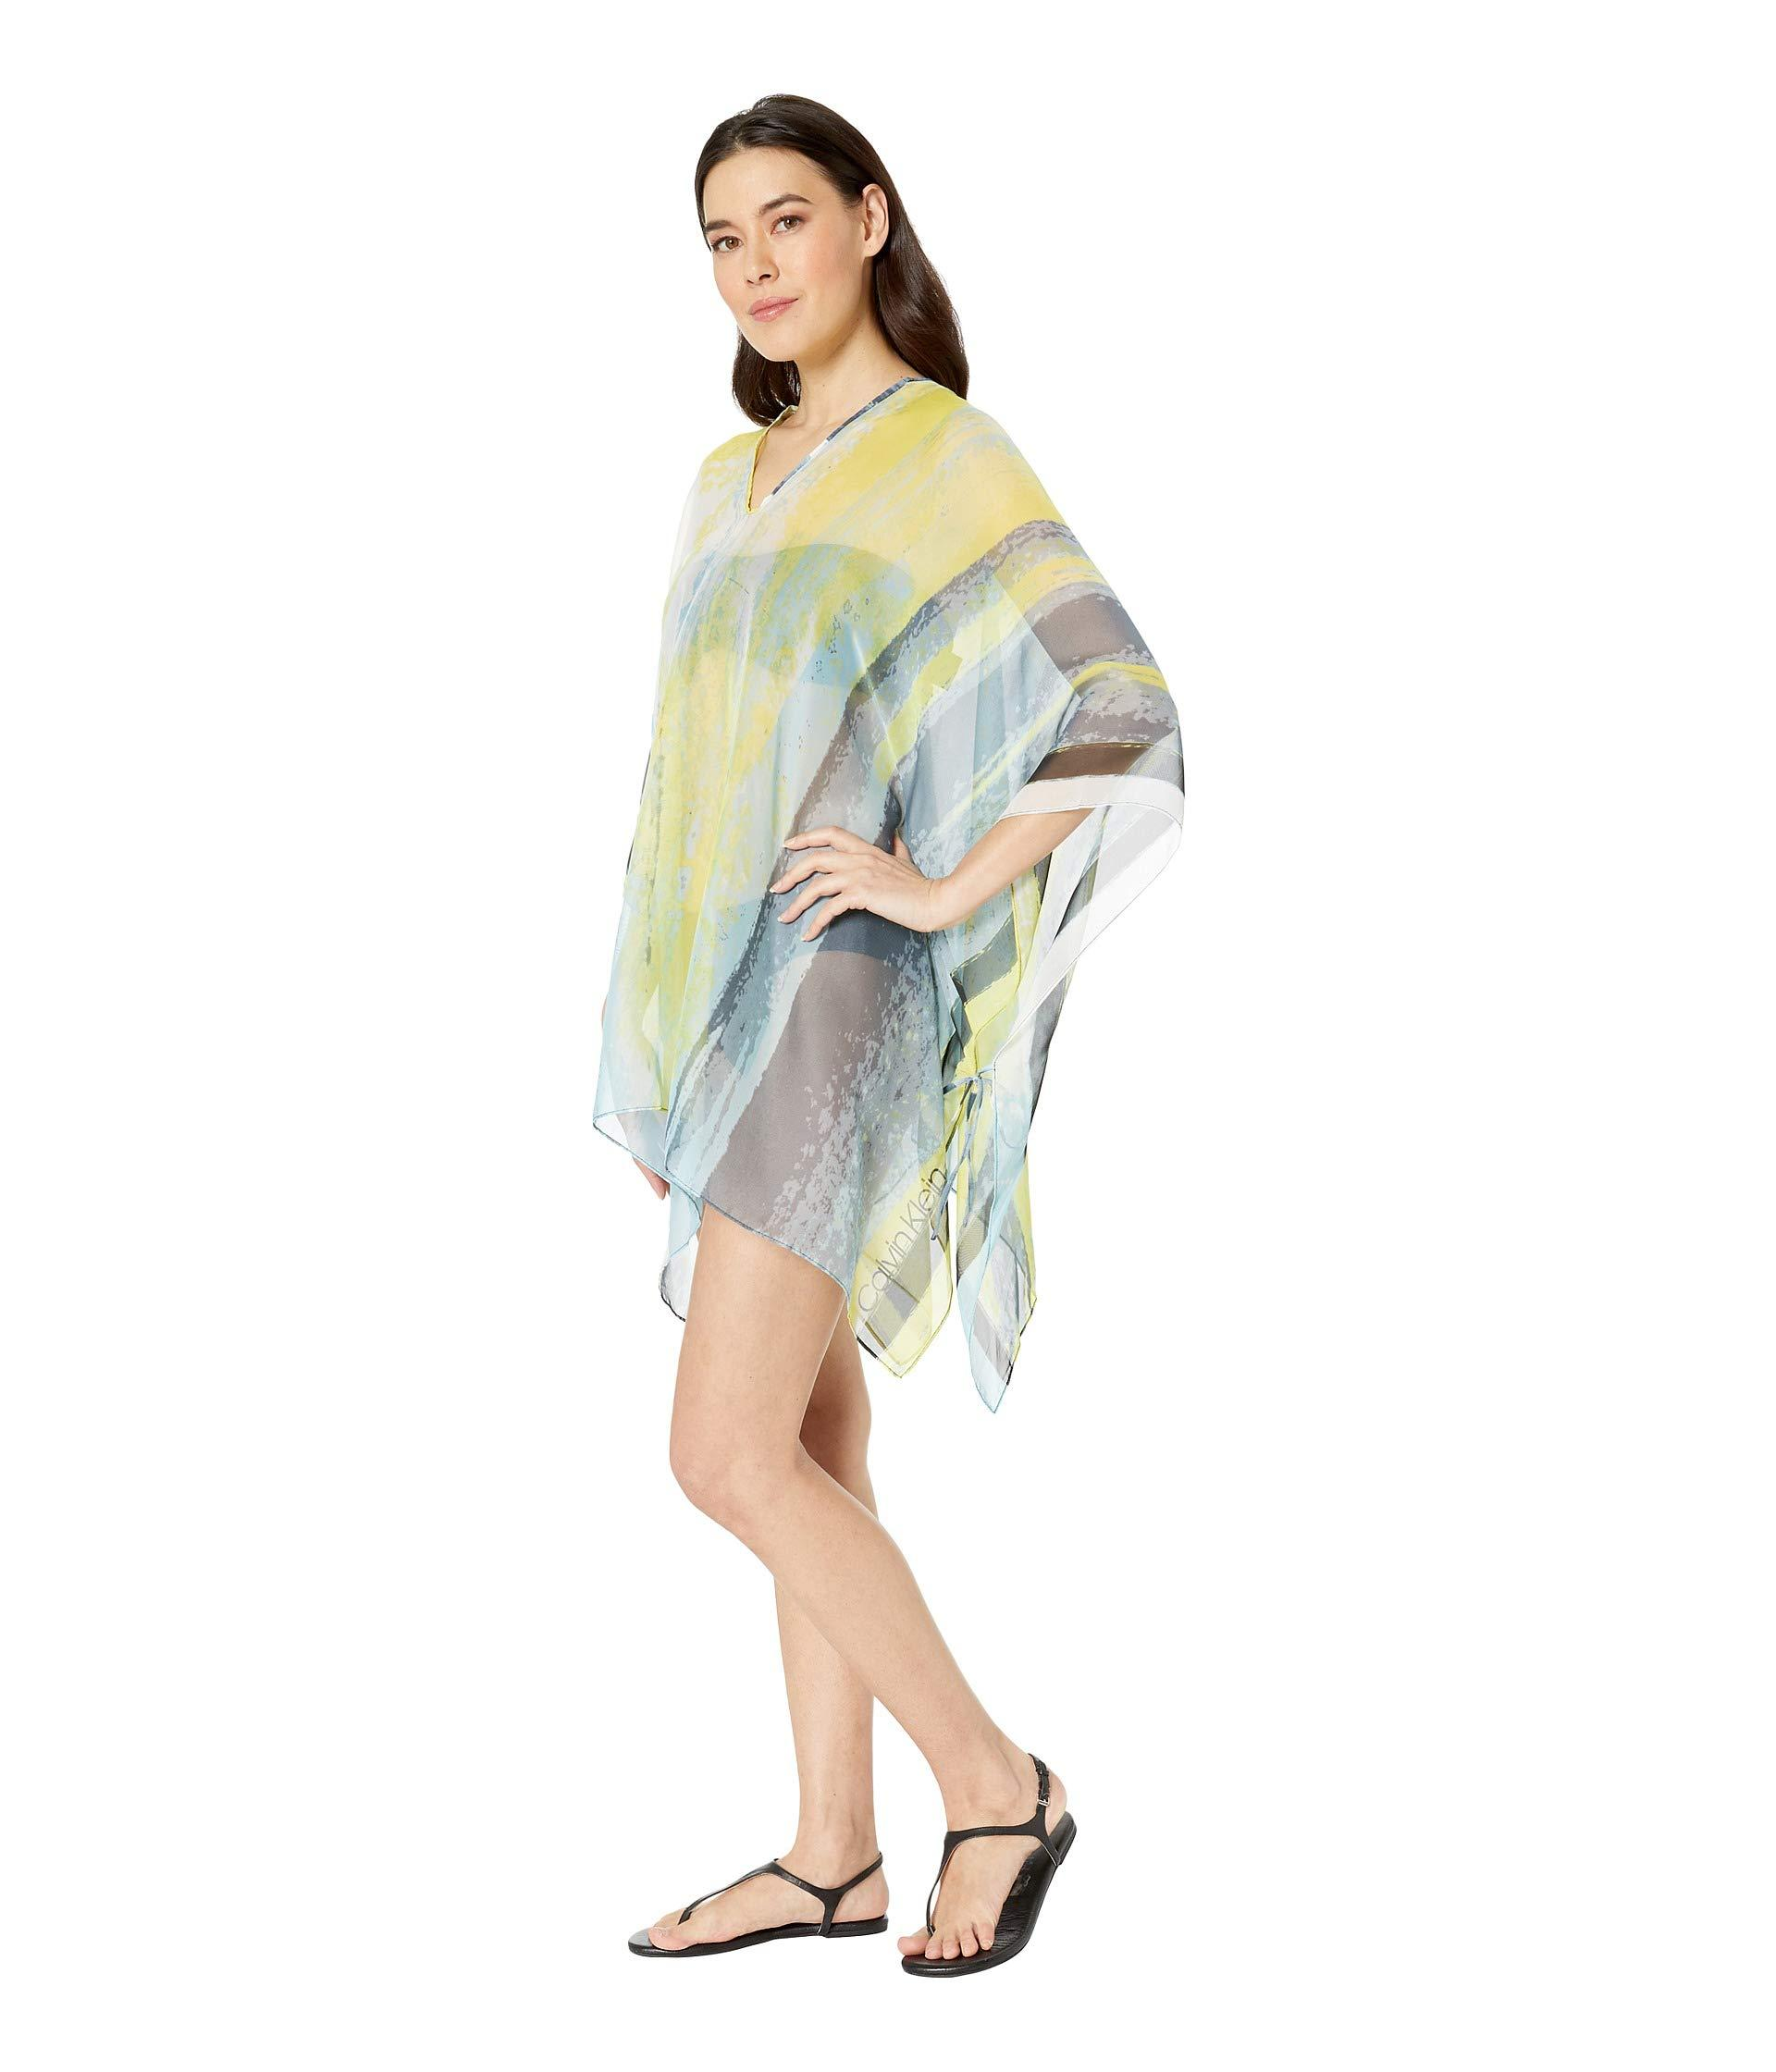 98b8099b80 Calvin Klein Abstract Cloud Chiffon Poncho Cover-up Top (lime ...